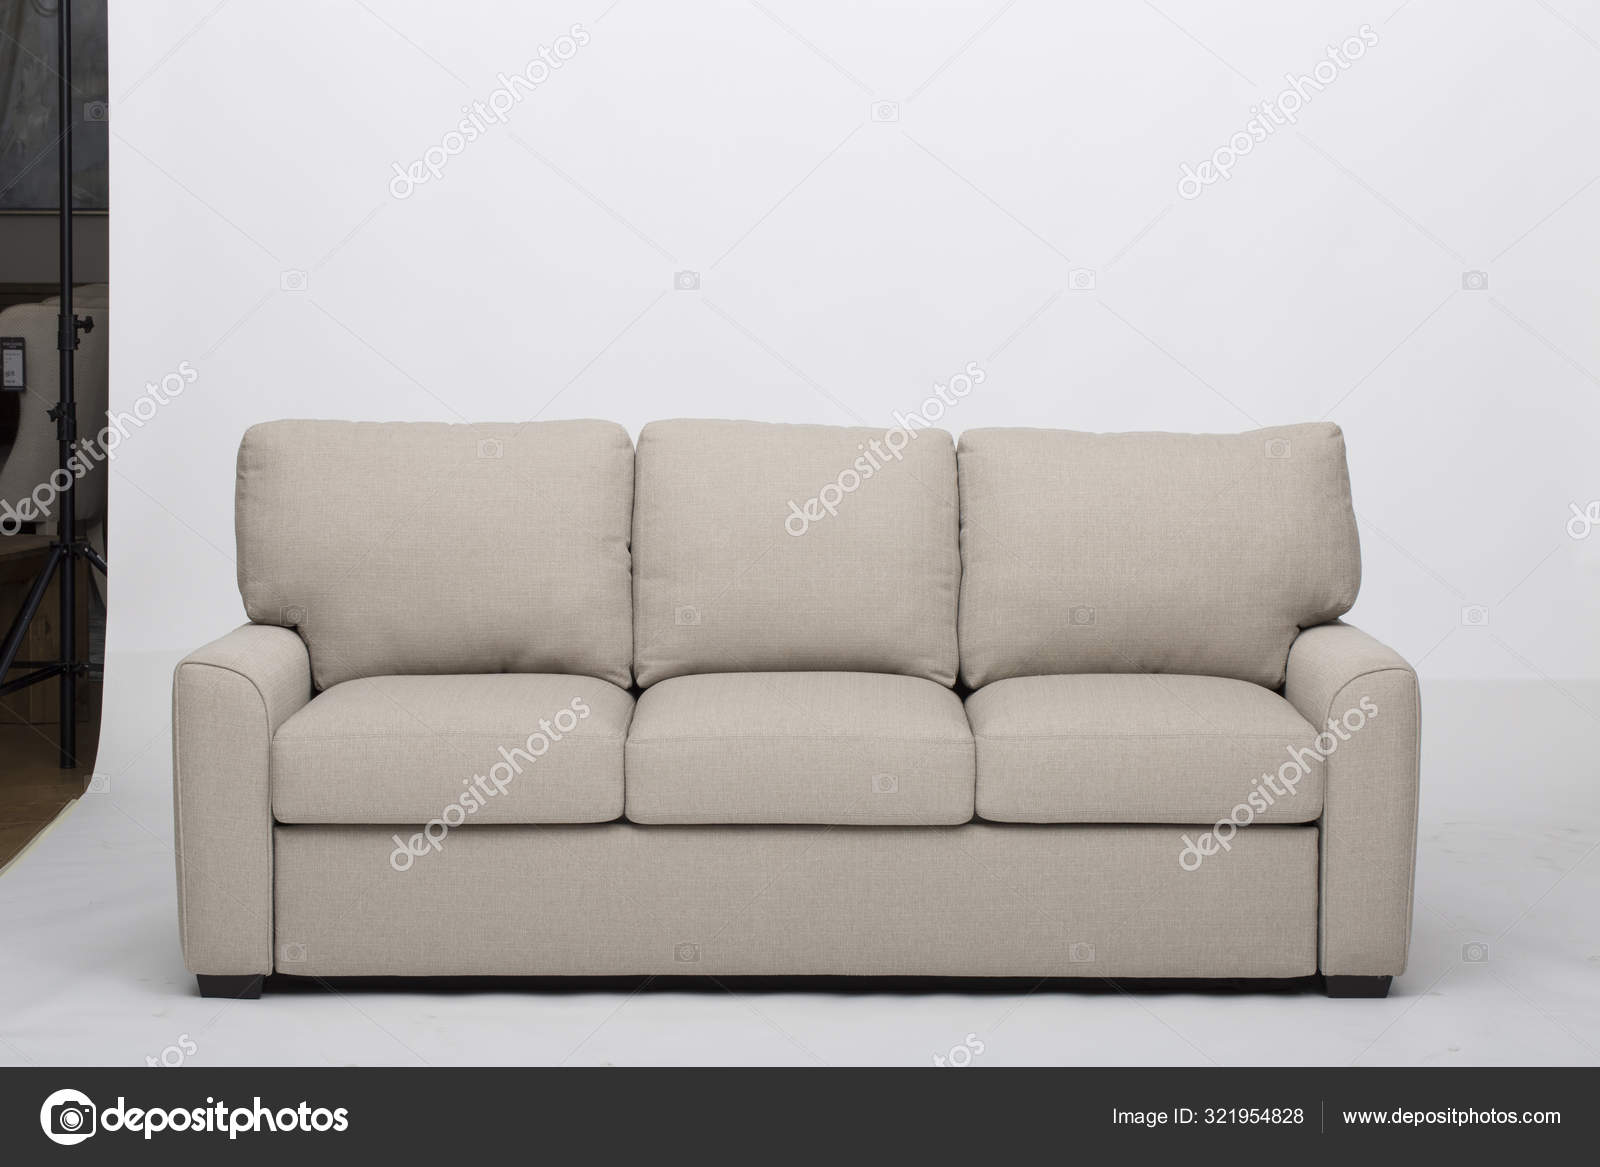 Picture of: Convertible Sofa Bed White Flex Loveseat Chaise Sectional Sleeper Flex Full Size Loveseat Chaise Sleeper Luonto Furniture Stock Photo C Jassdhiman 321954828